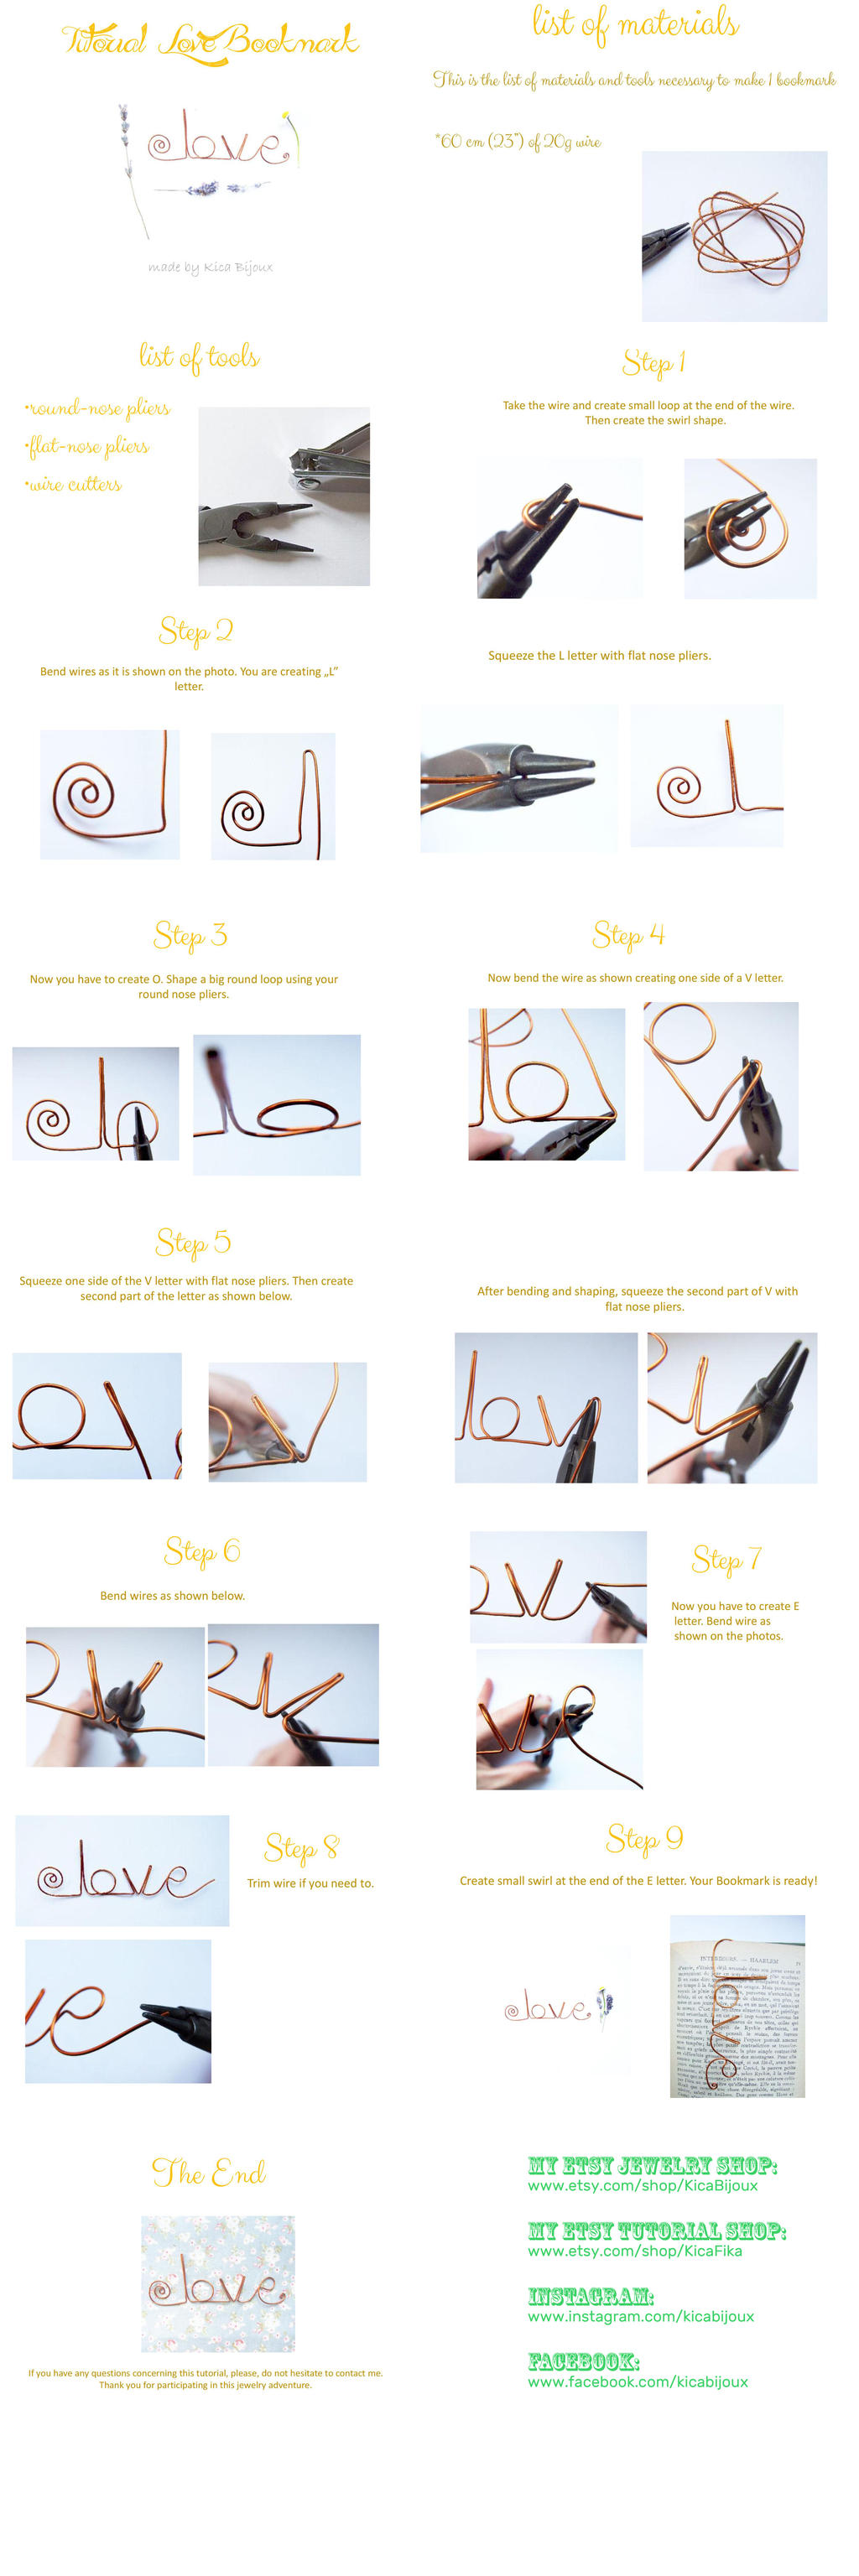 Love Sign Tutorial by Lethe007